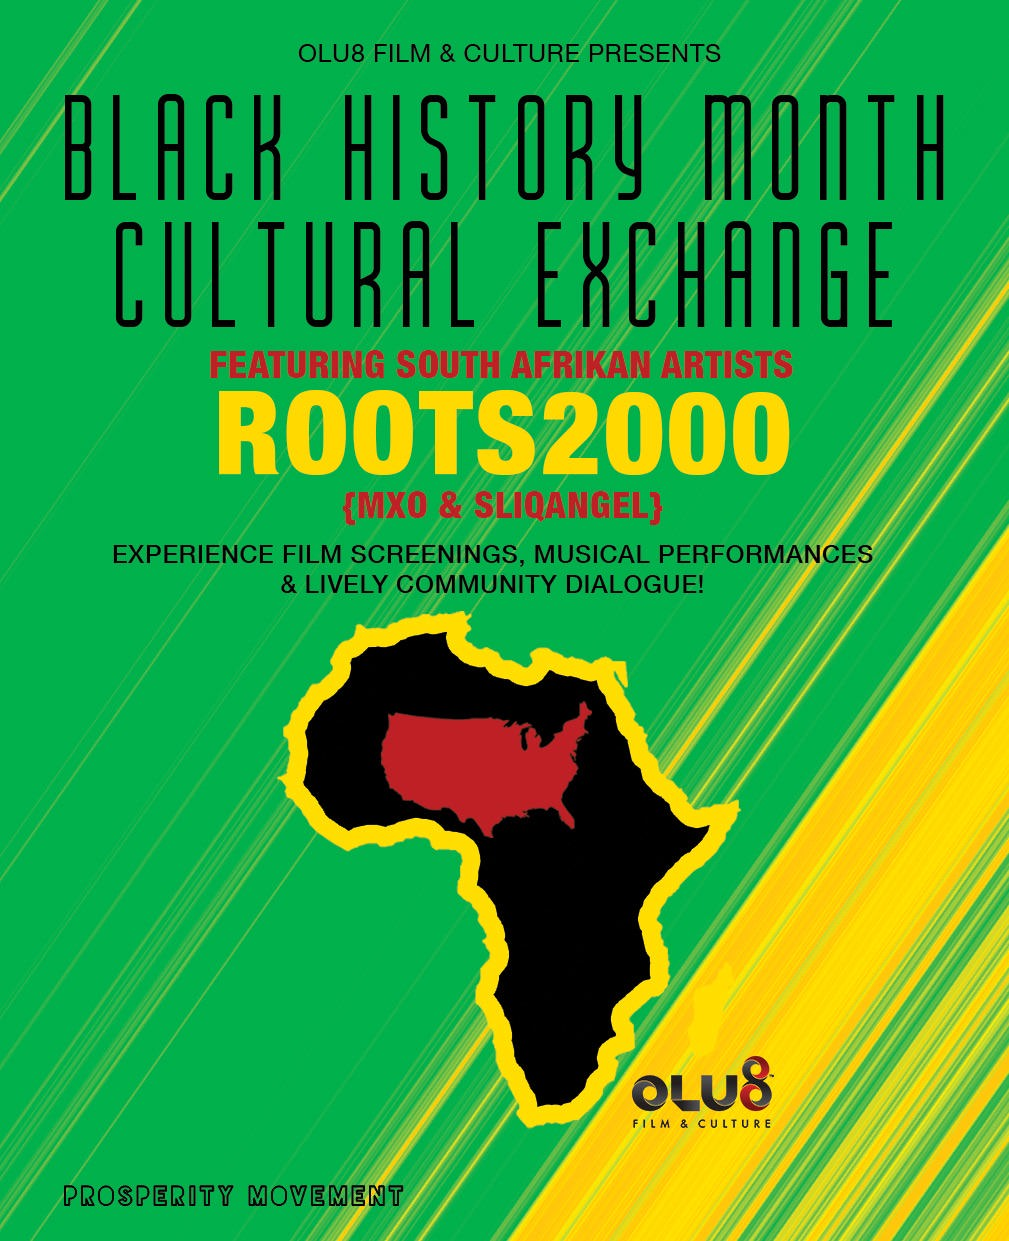 Black History Month Cultural Exchange 2 (1) opt